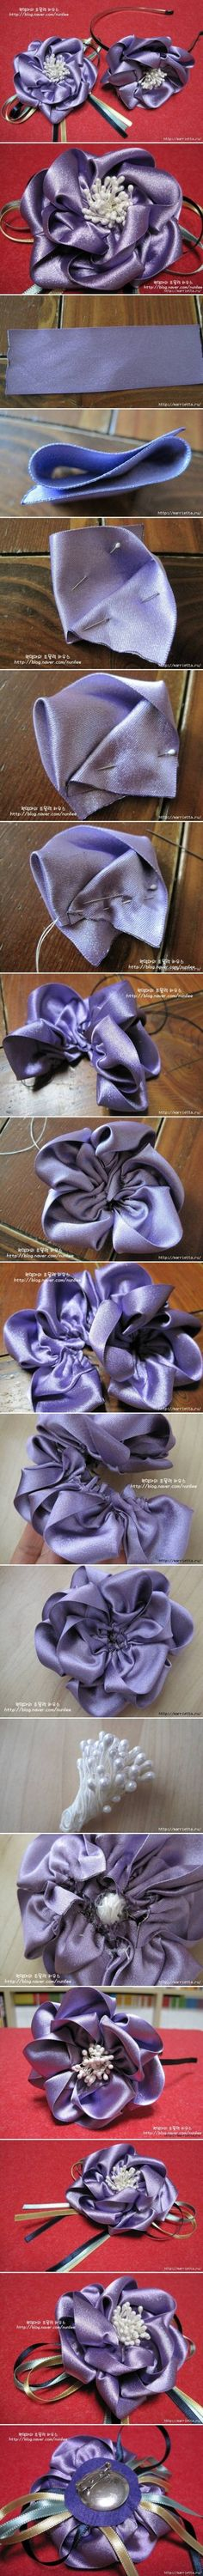 For GMAs maybe How to make Satin Ribbon Flower Brooch bouquet step by step DIY tutorial instructions | How To Instructions, How to, how to do, diy instructions, crafts, do it yourself, diy website, art project ideas